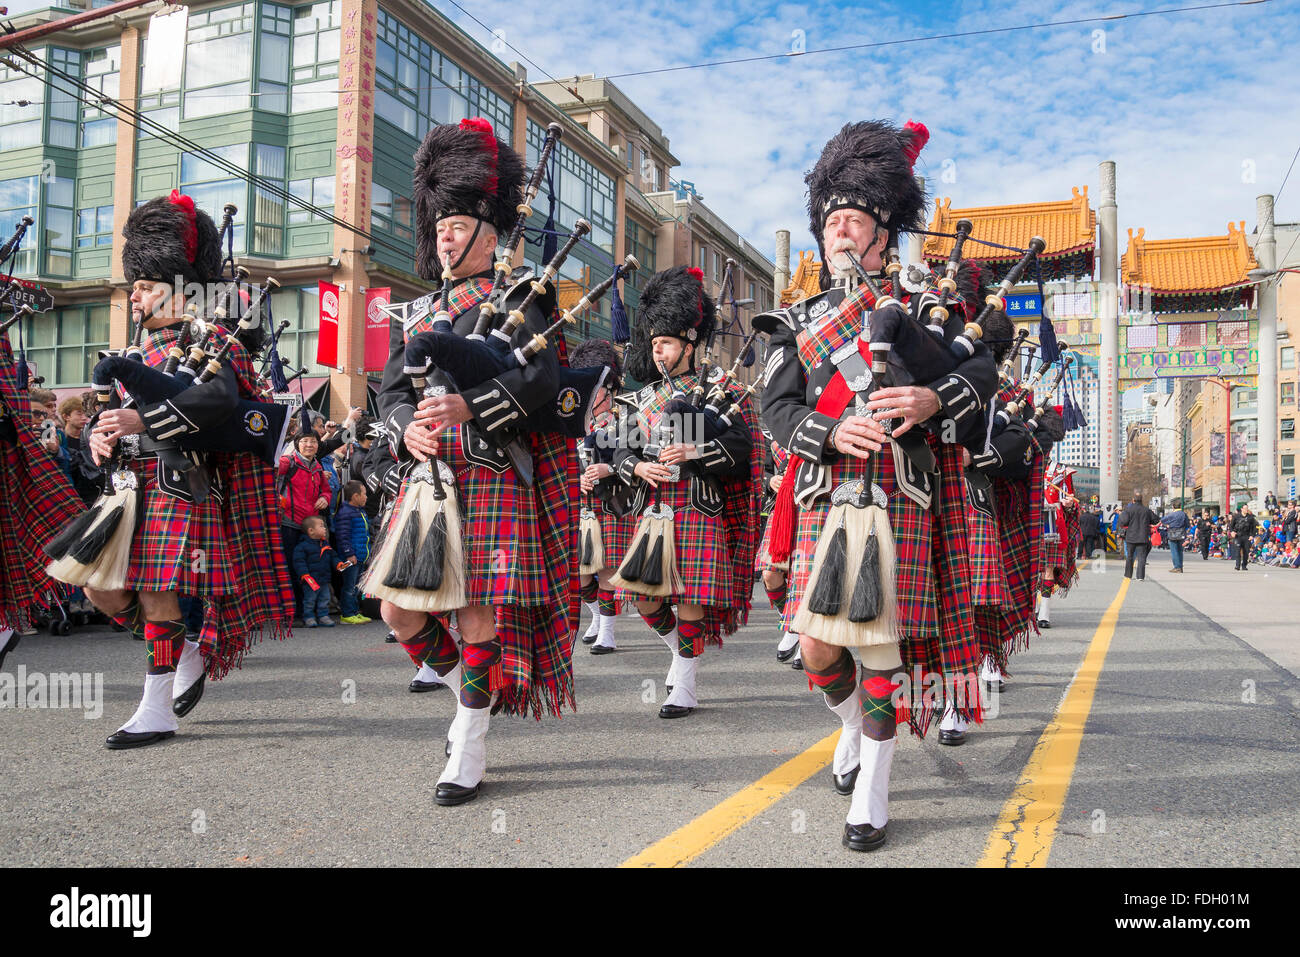 Police Pipe Band in Parade, Vancouver, British Columbia, Canada - Stock Image